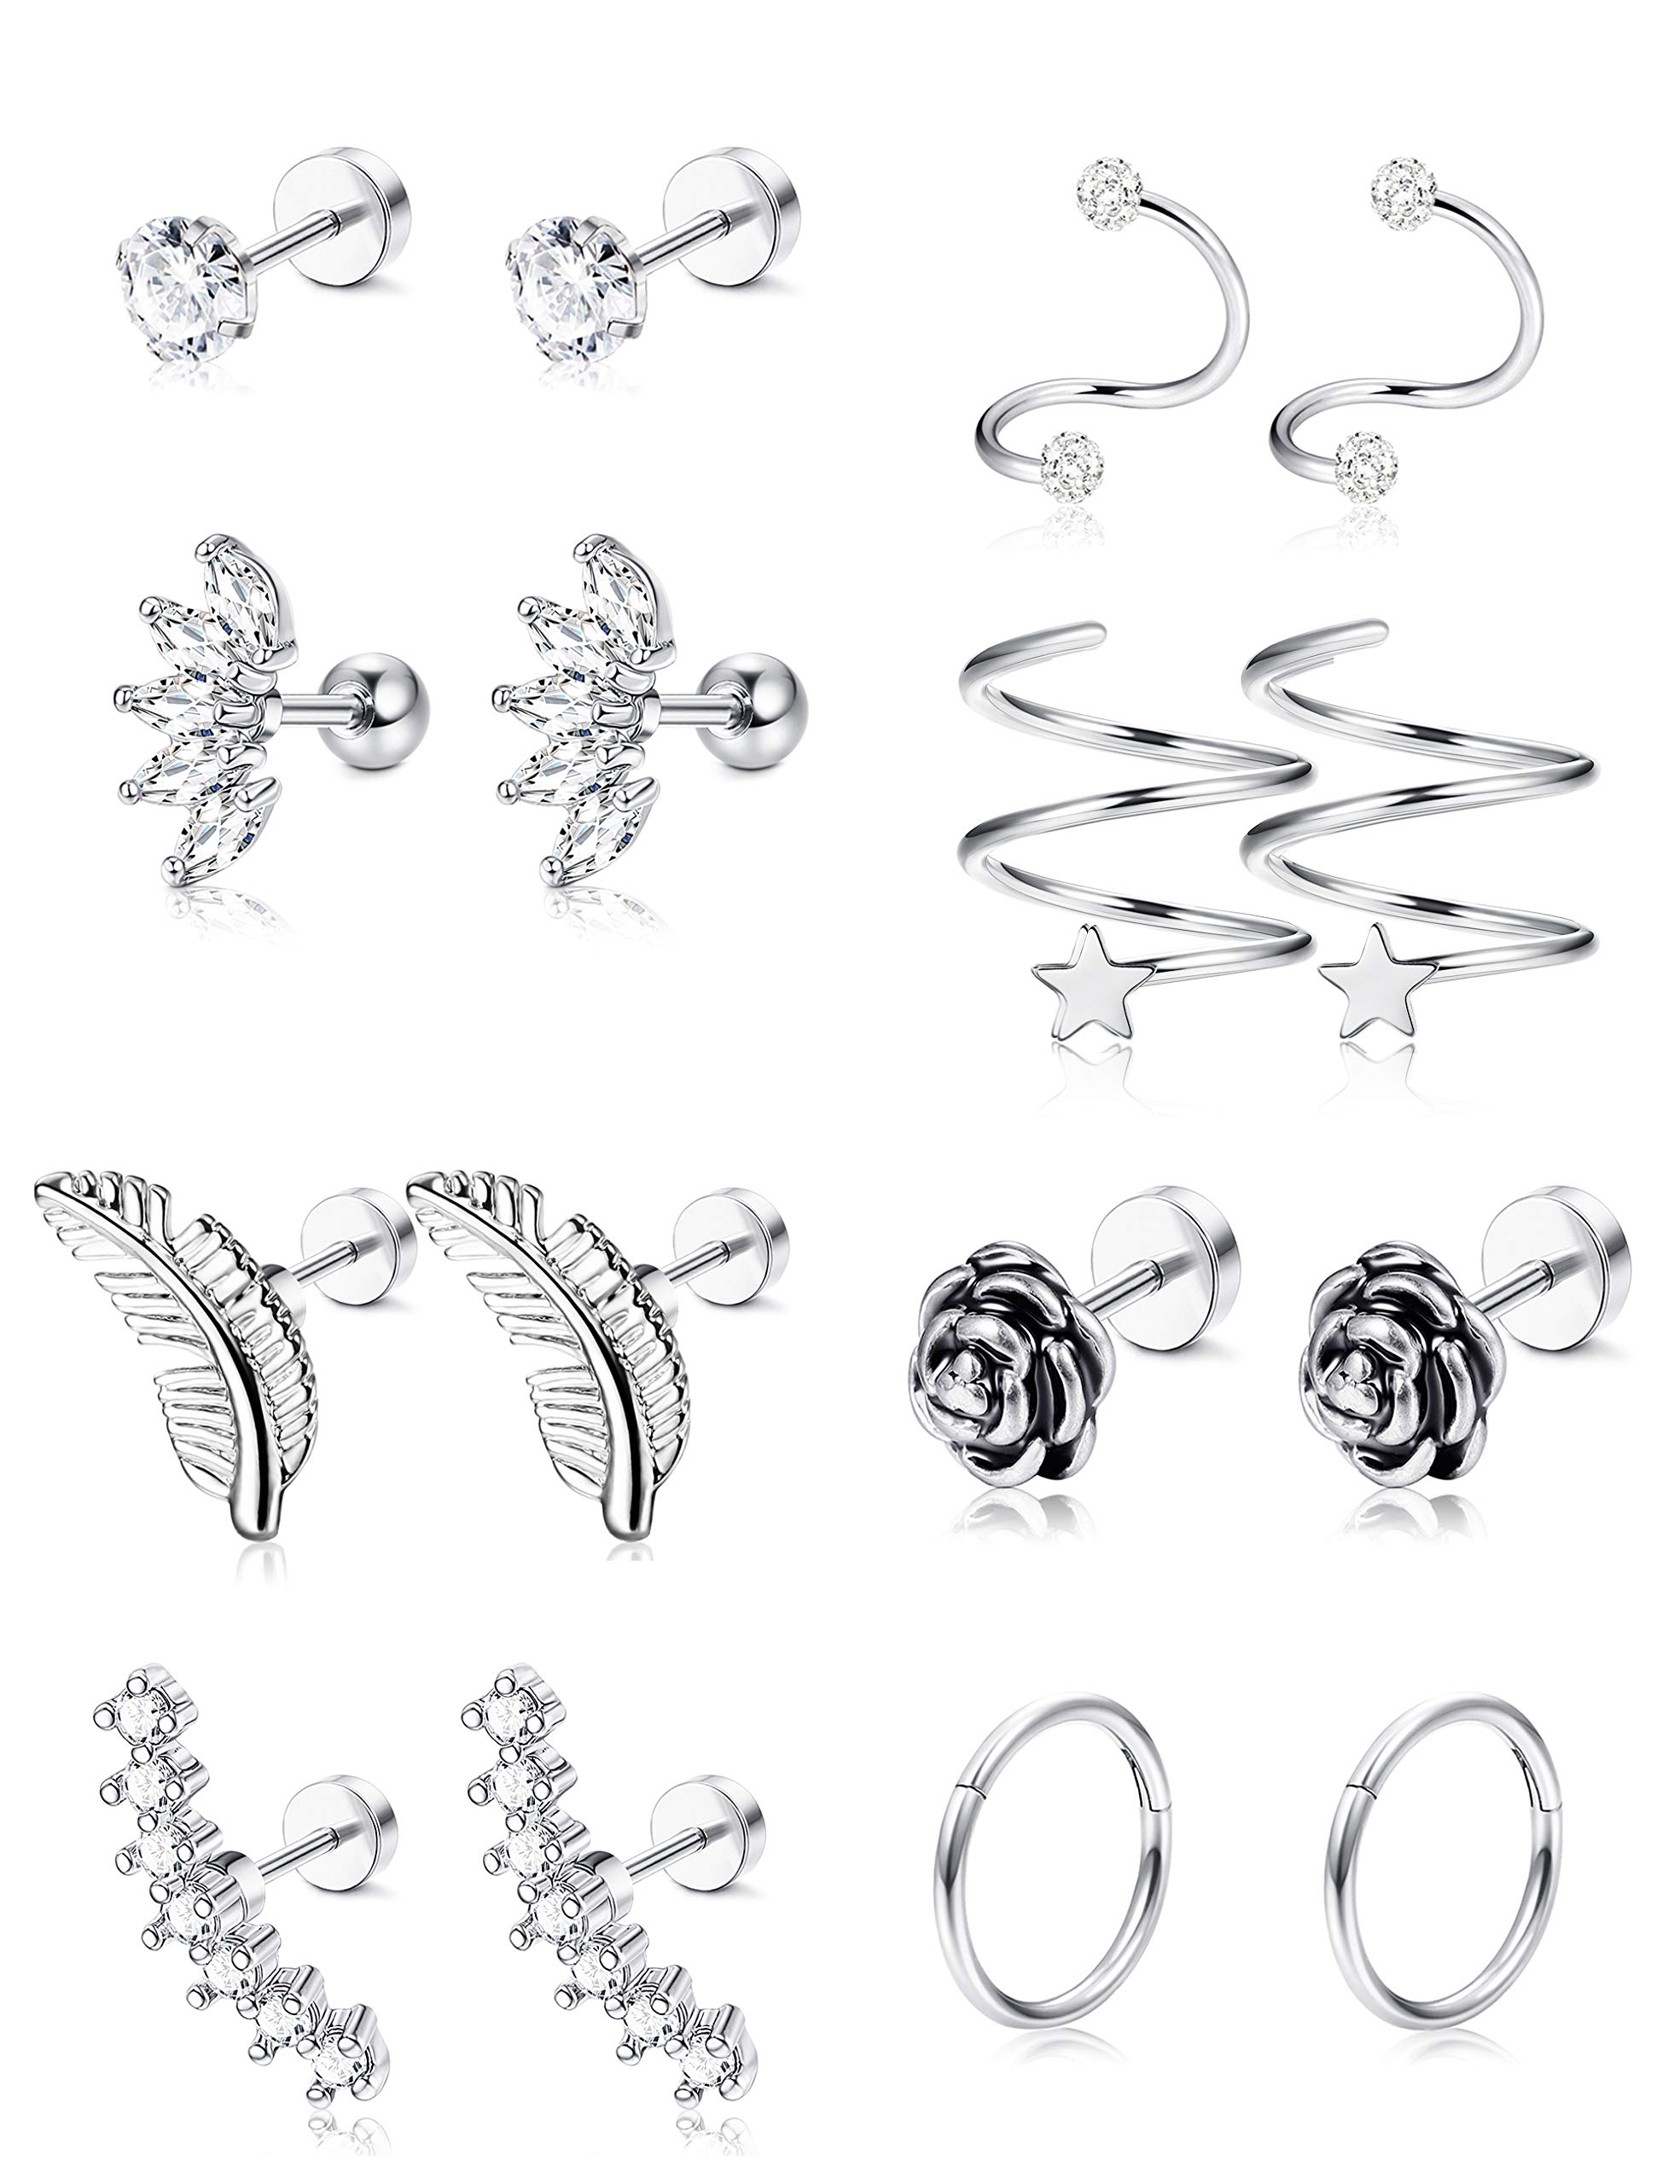 LOYALLOOK Stainless Cartilage Zirconia Earrings